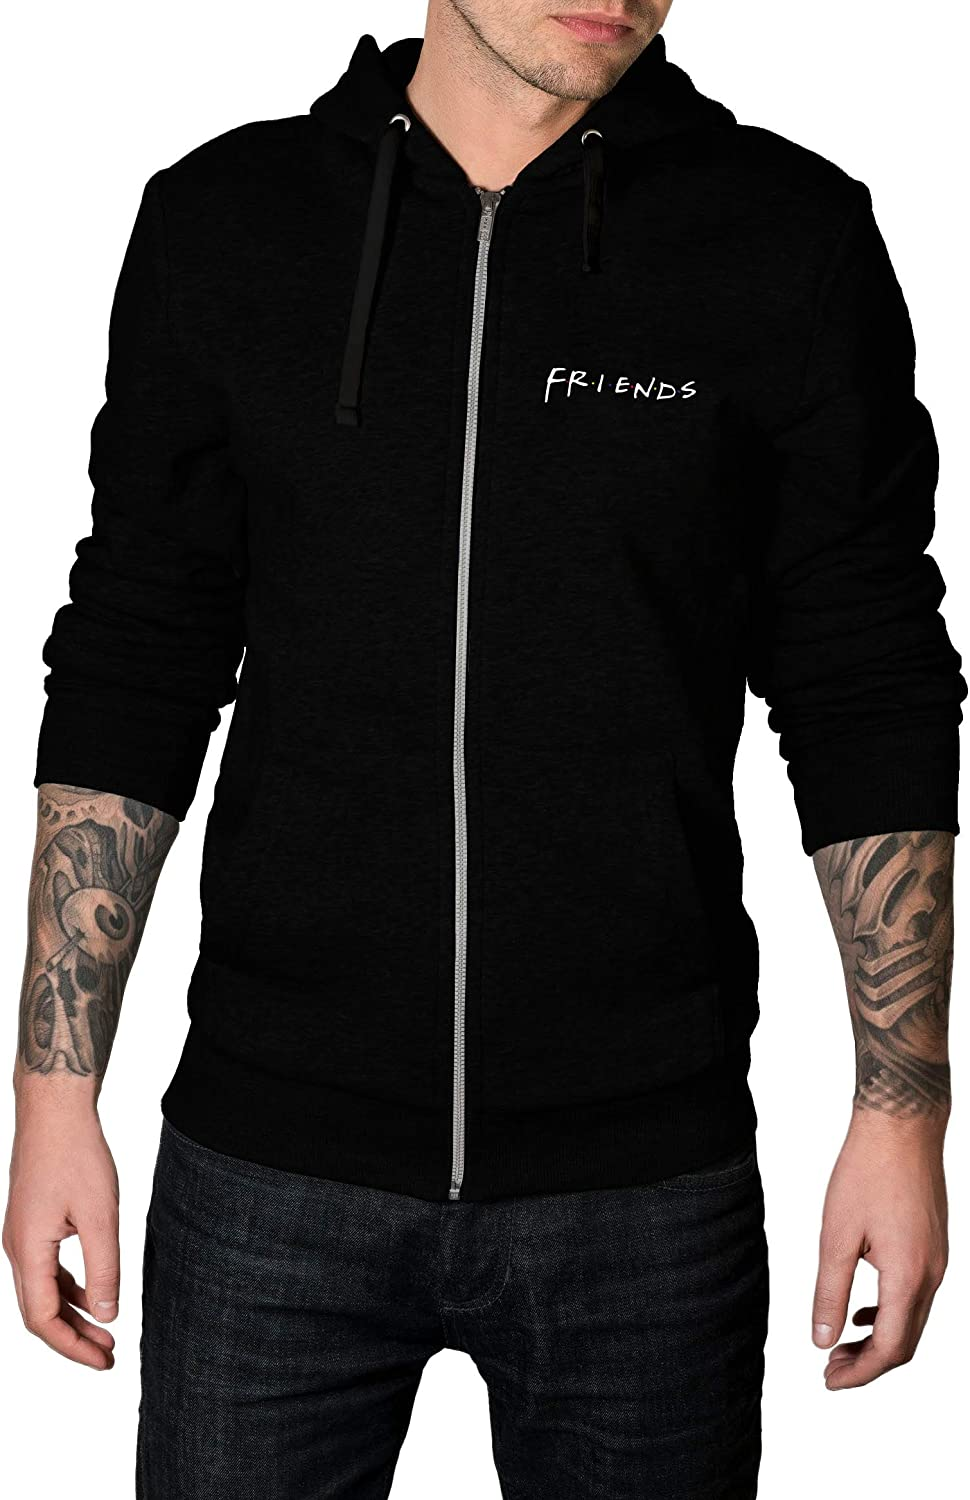 Decrum Mens Superhero Zip Up Hoodie - Fleece Zipper Hooded Sweatshirt